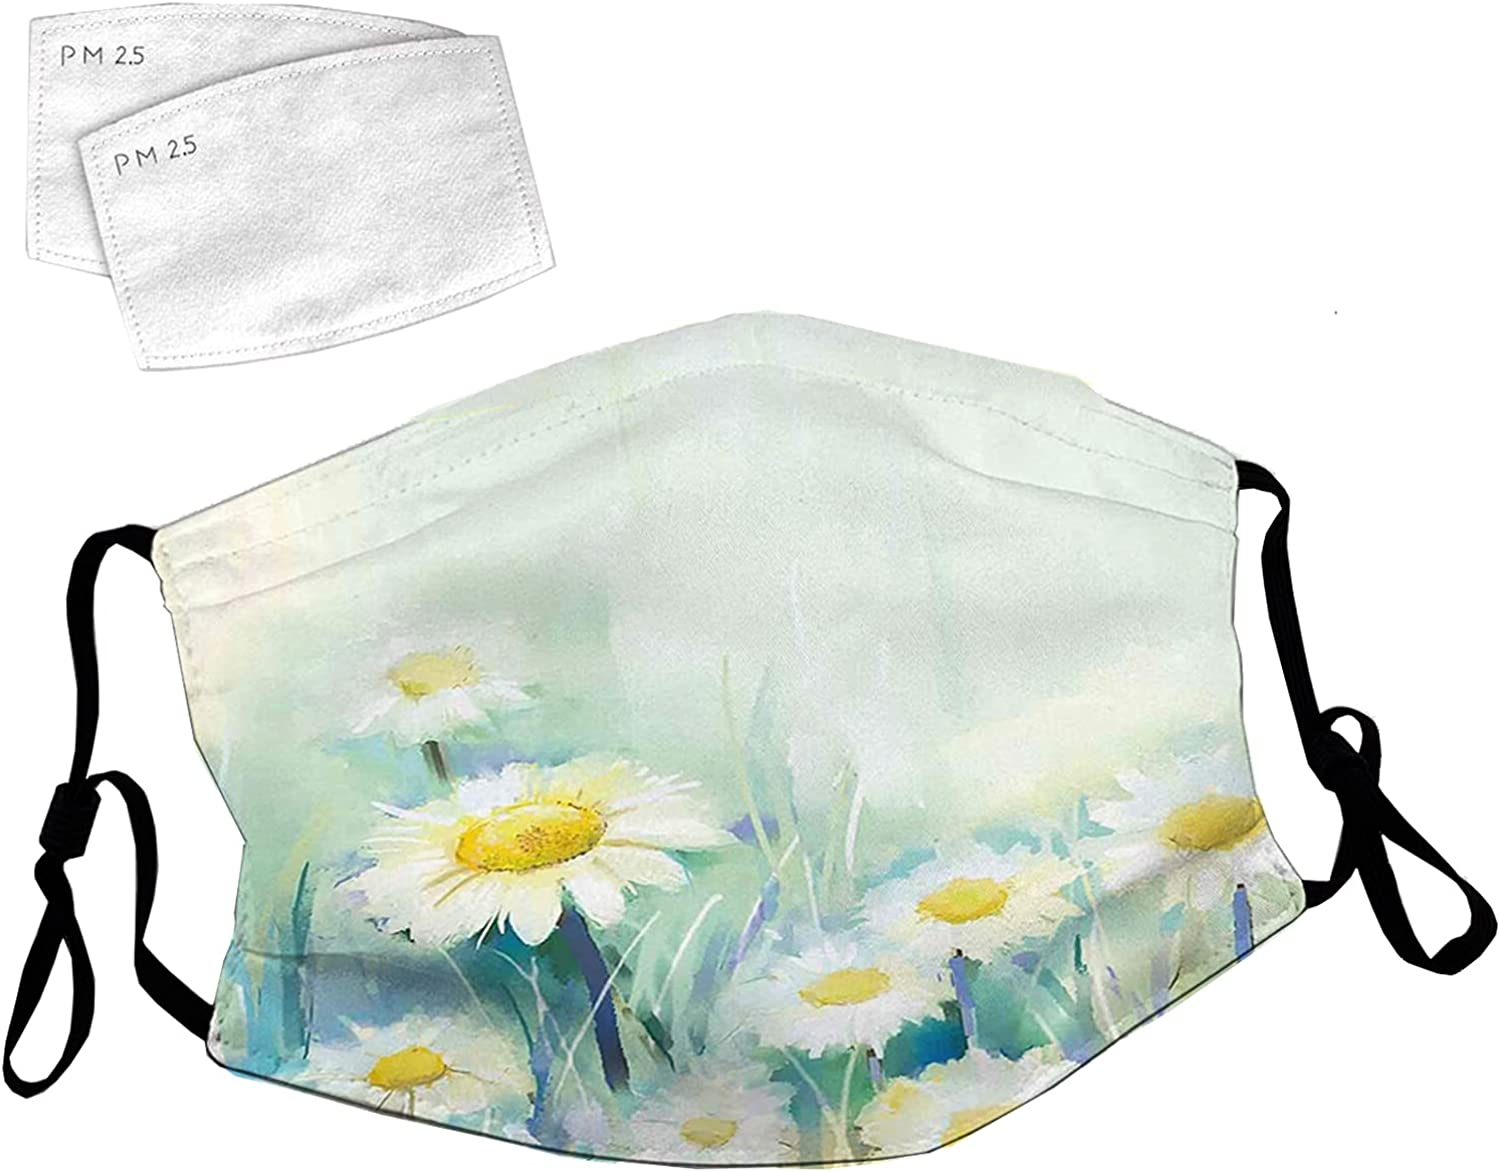 Reusable Face Mask with Adjustable Japan Maker New Ear Charlotte Mall Loops Grass Daisies Mo on